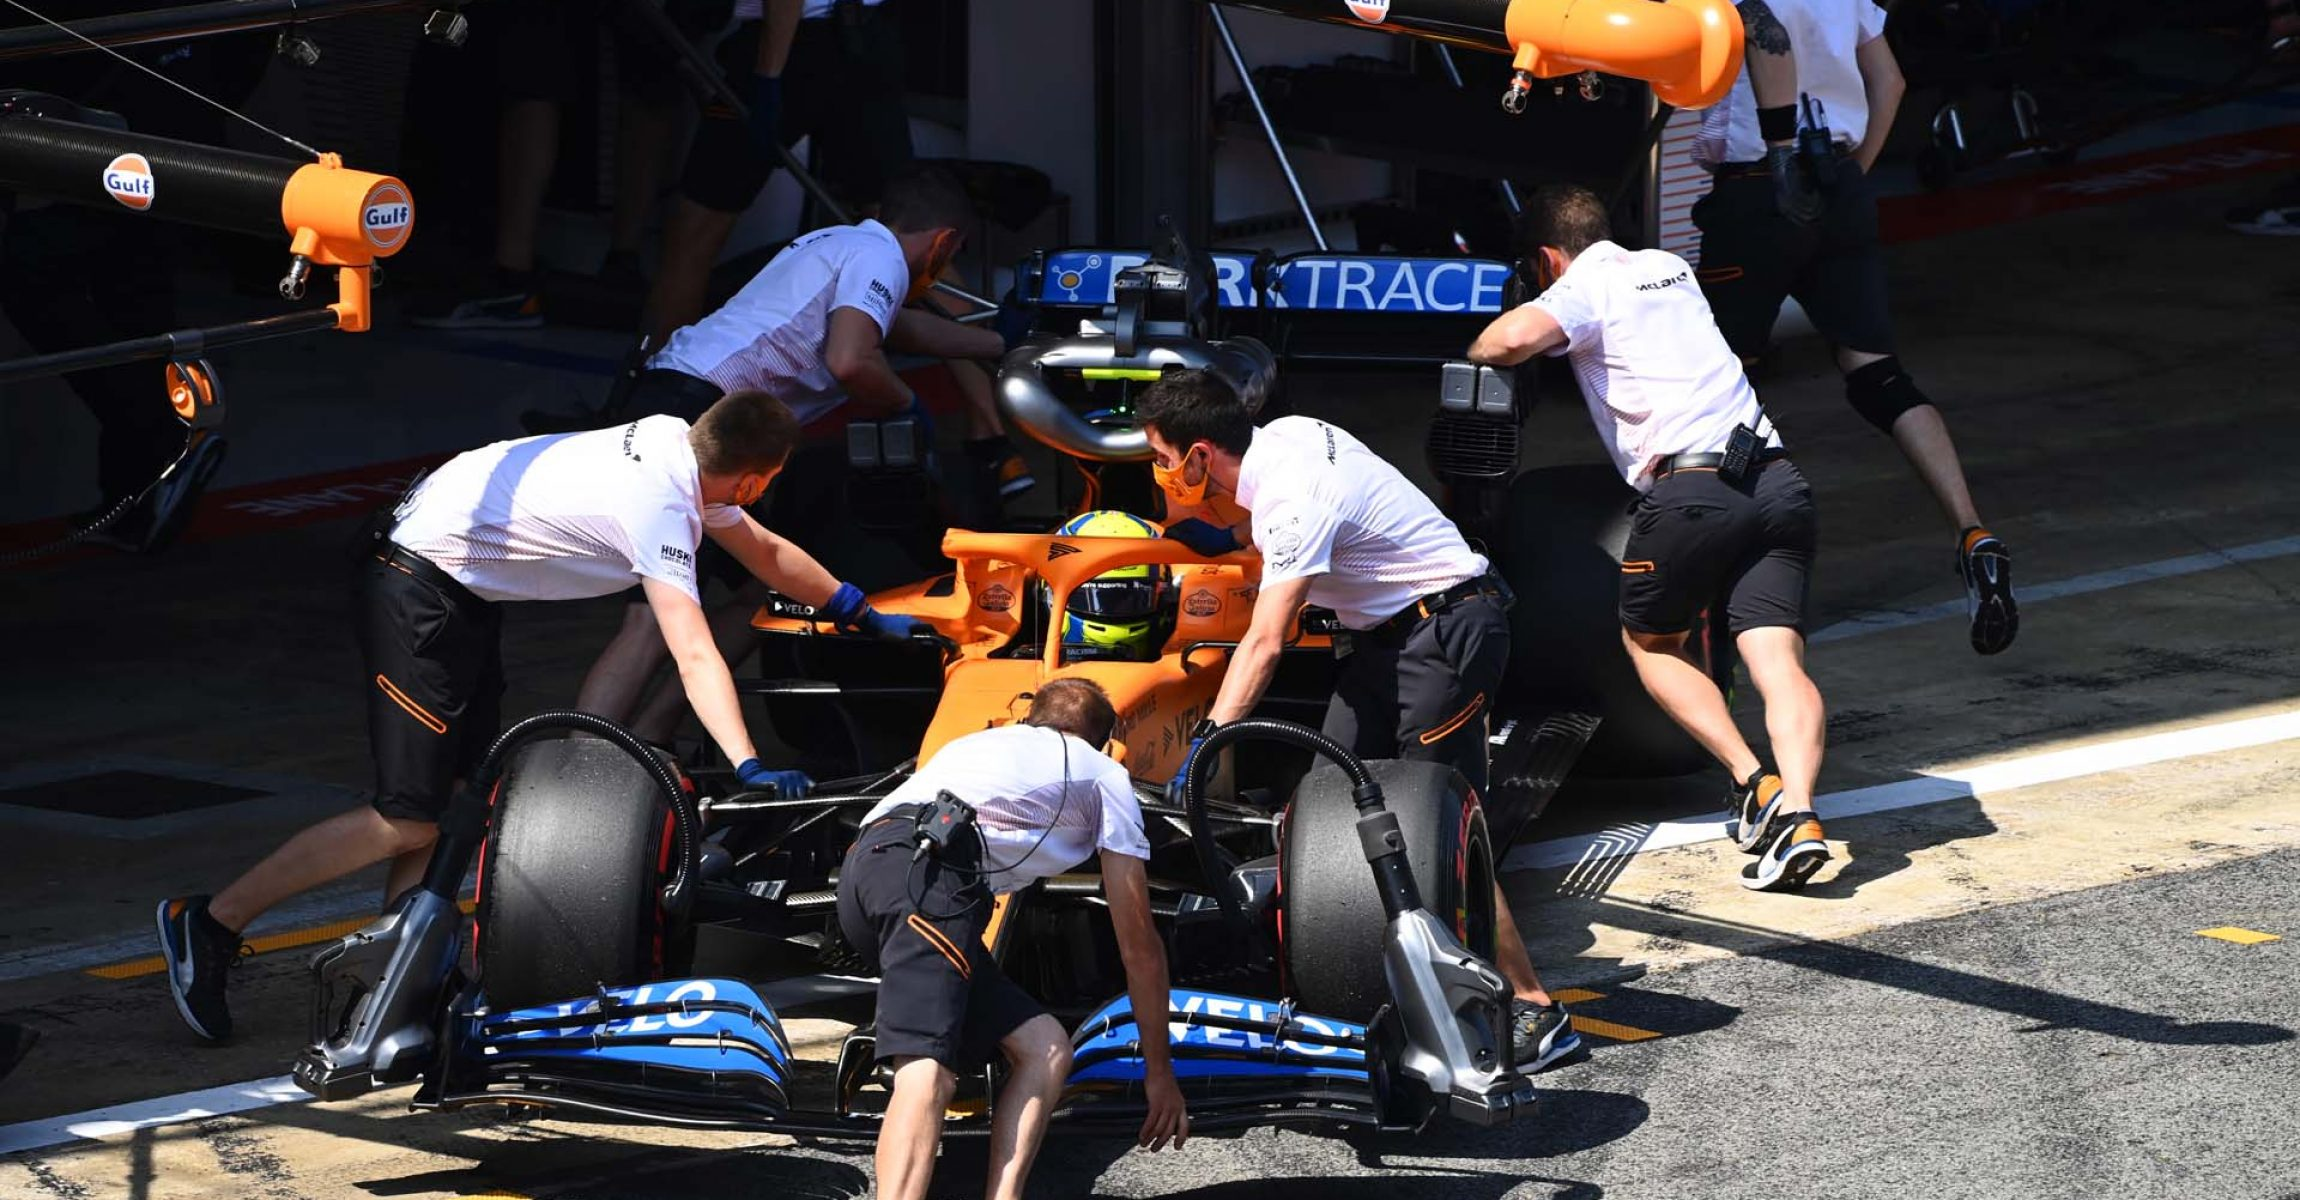 Lando Norris, McLaren MCL35, is returned to the garage. Mechanics wheel the car backwards